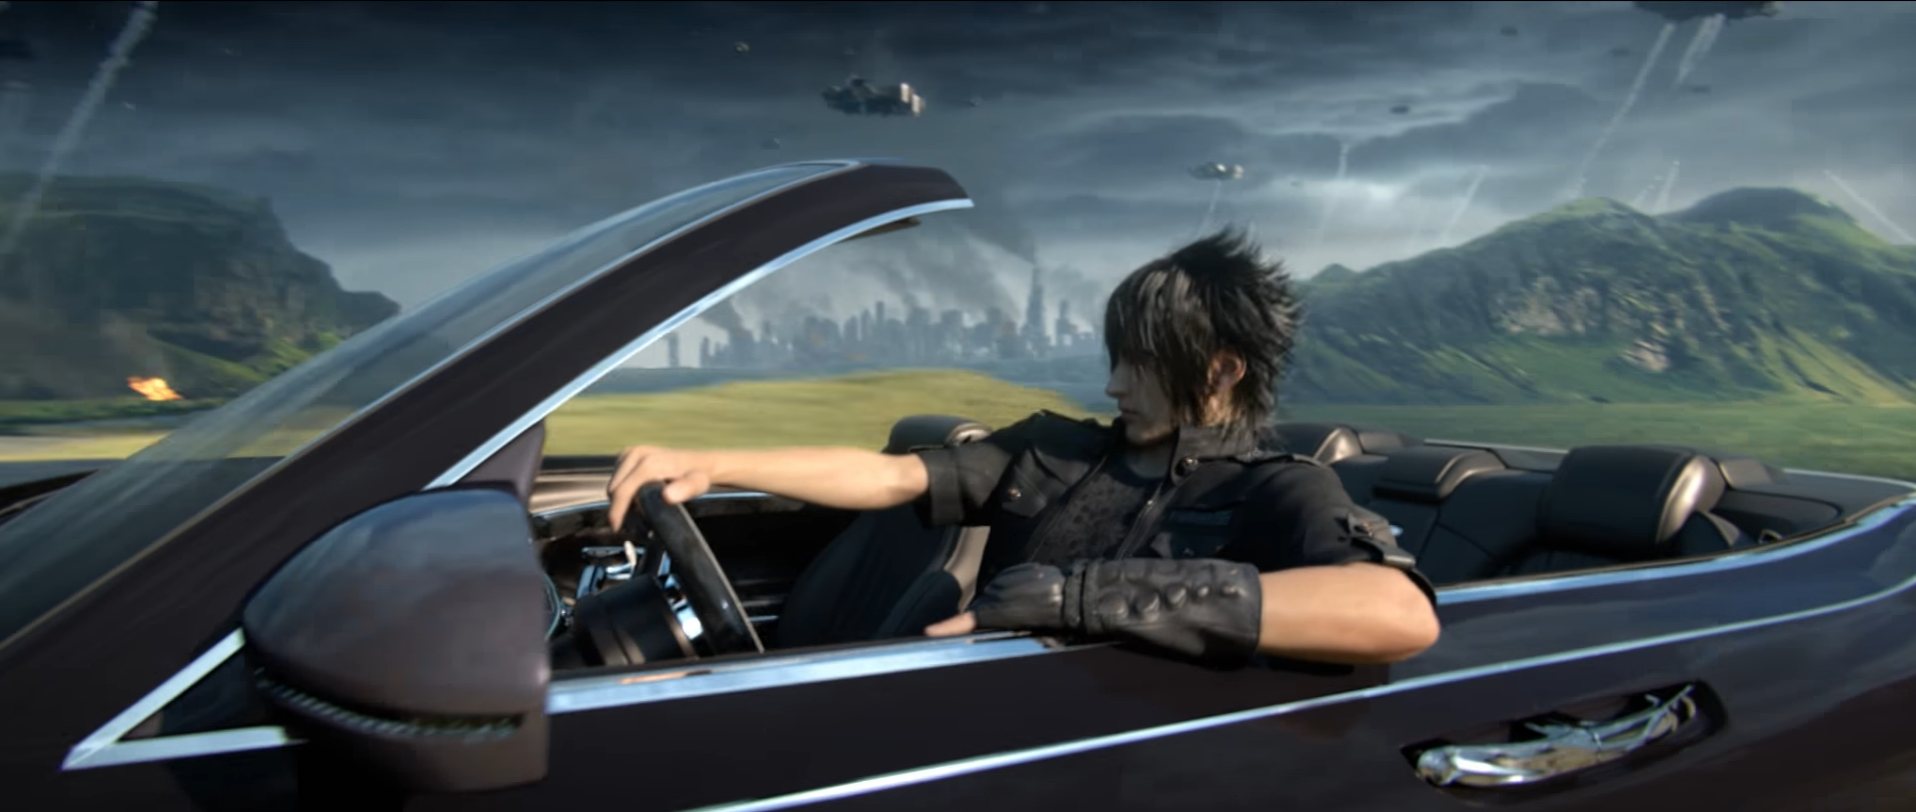 FFXV Brings a Modern Setting to the Final Fantasy Series